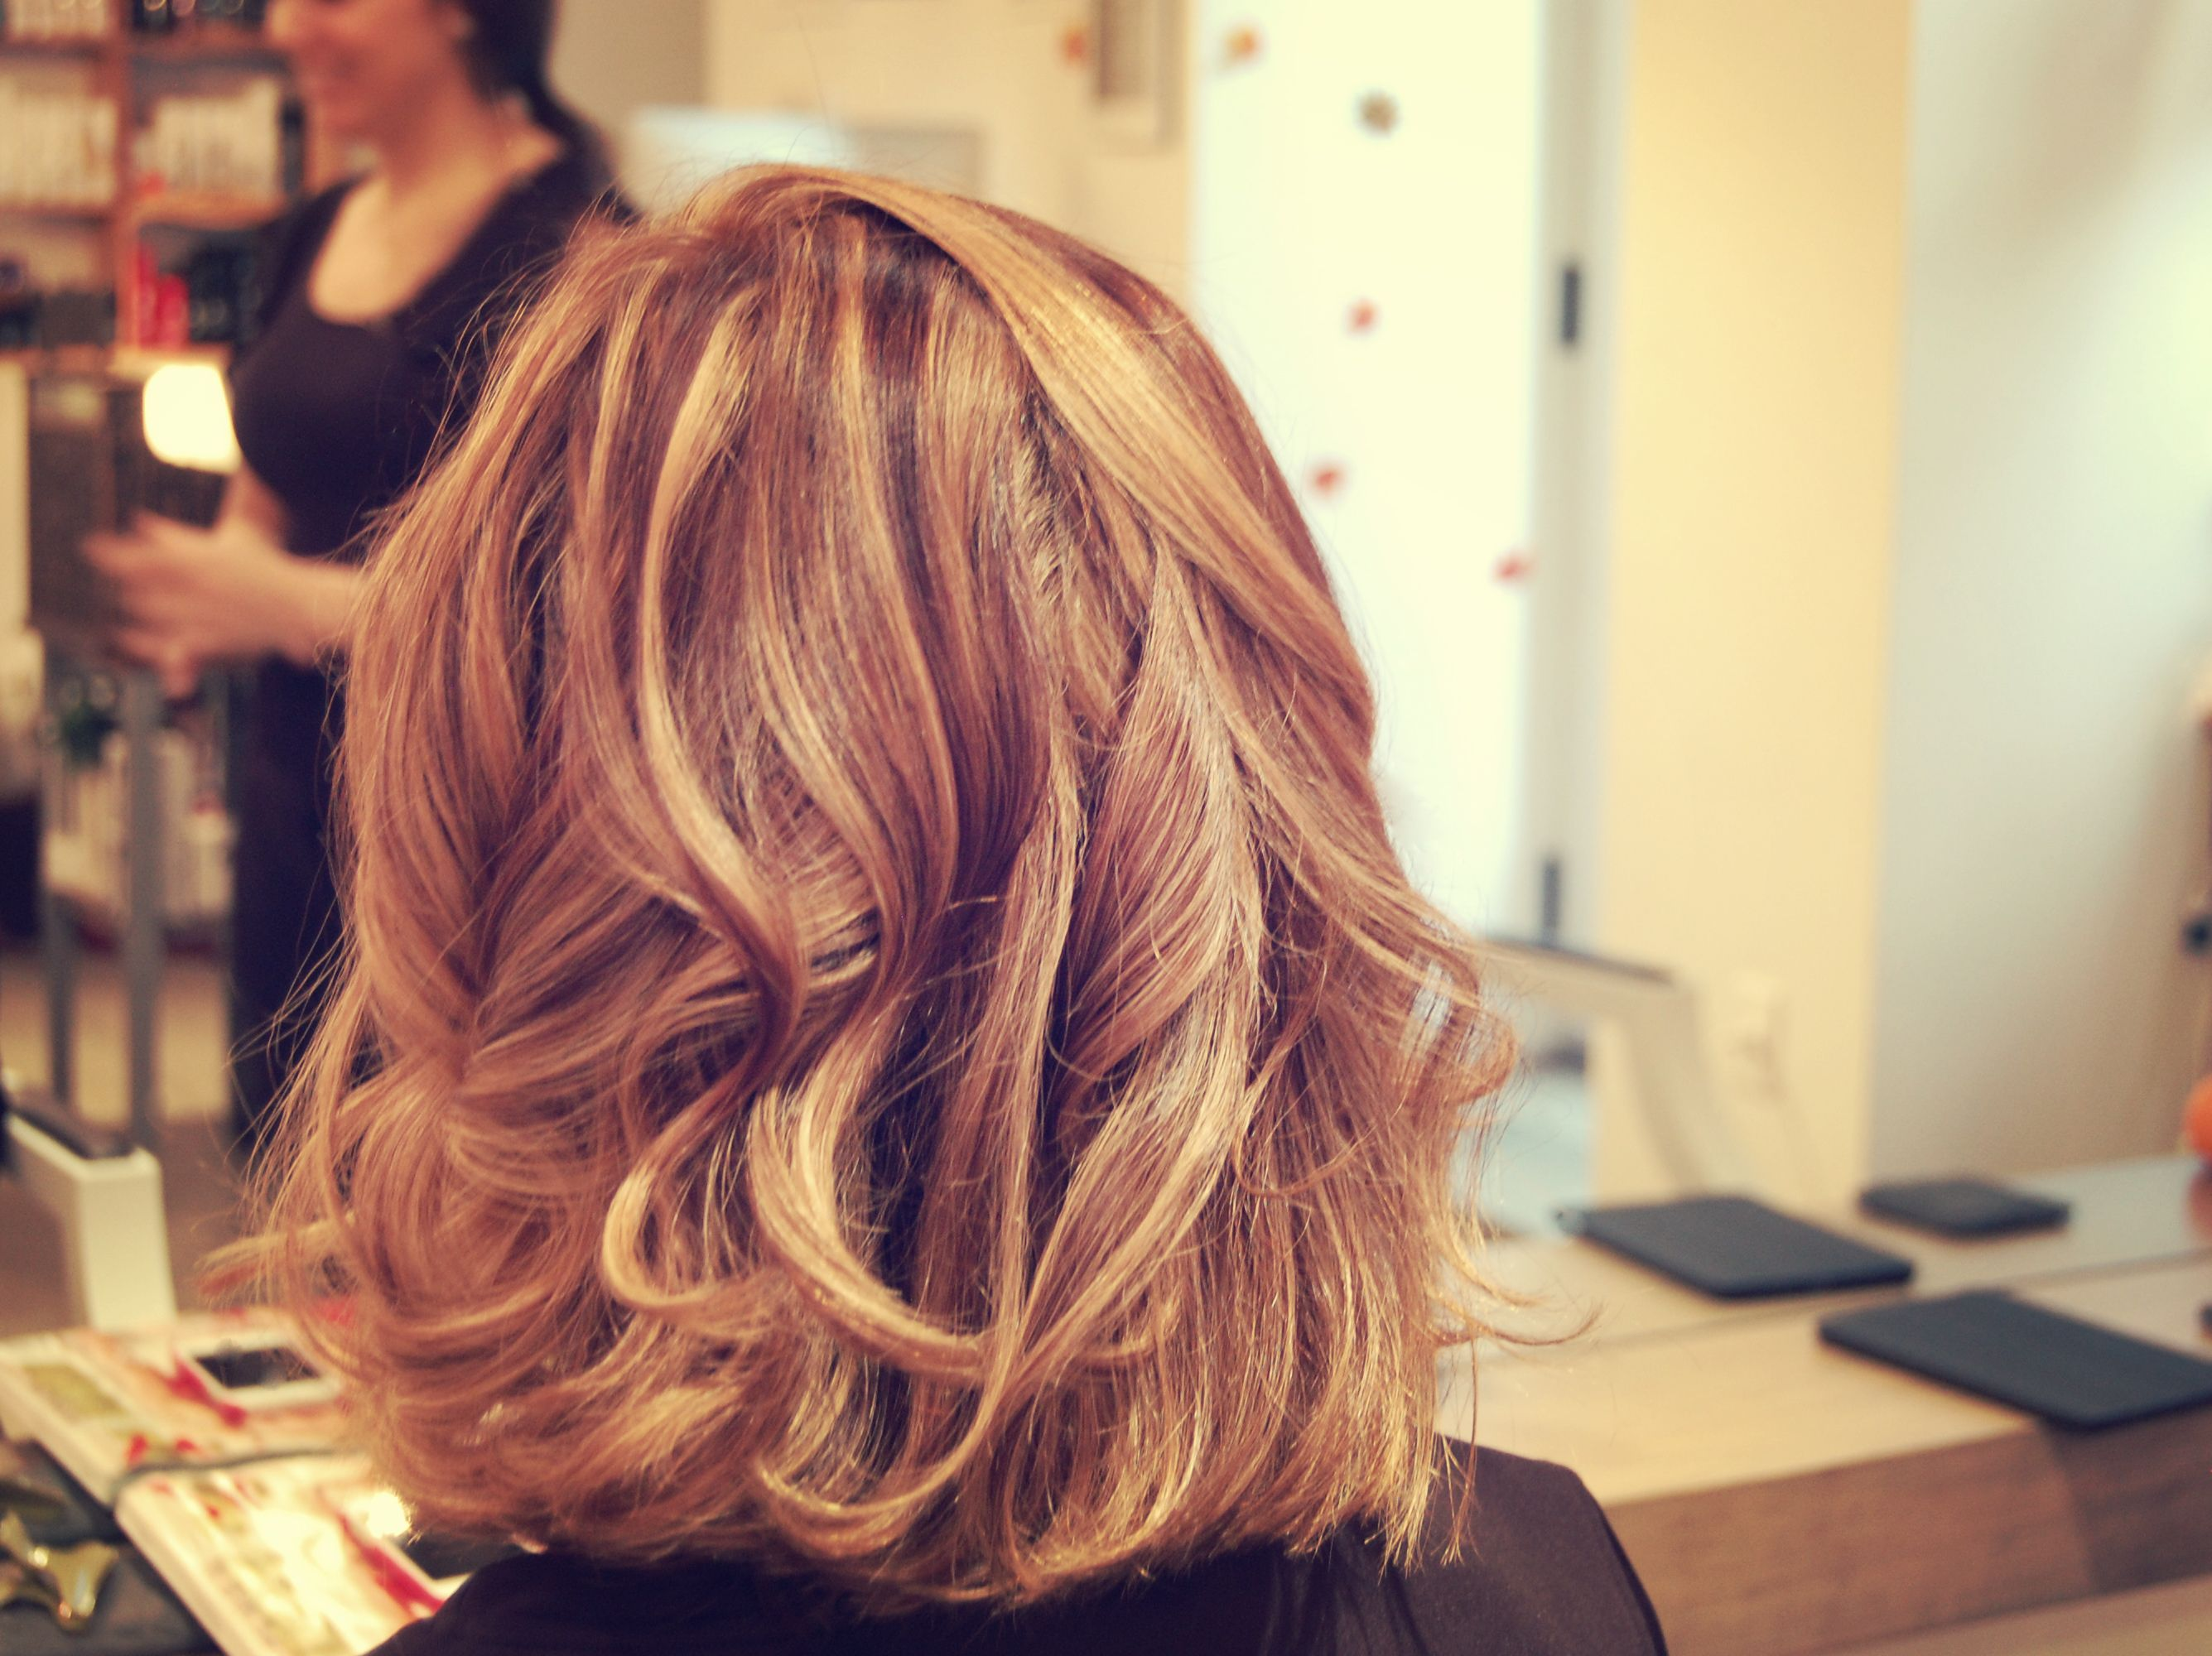 Hair Style Curling by wearticles.com